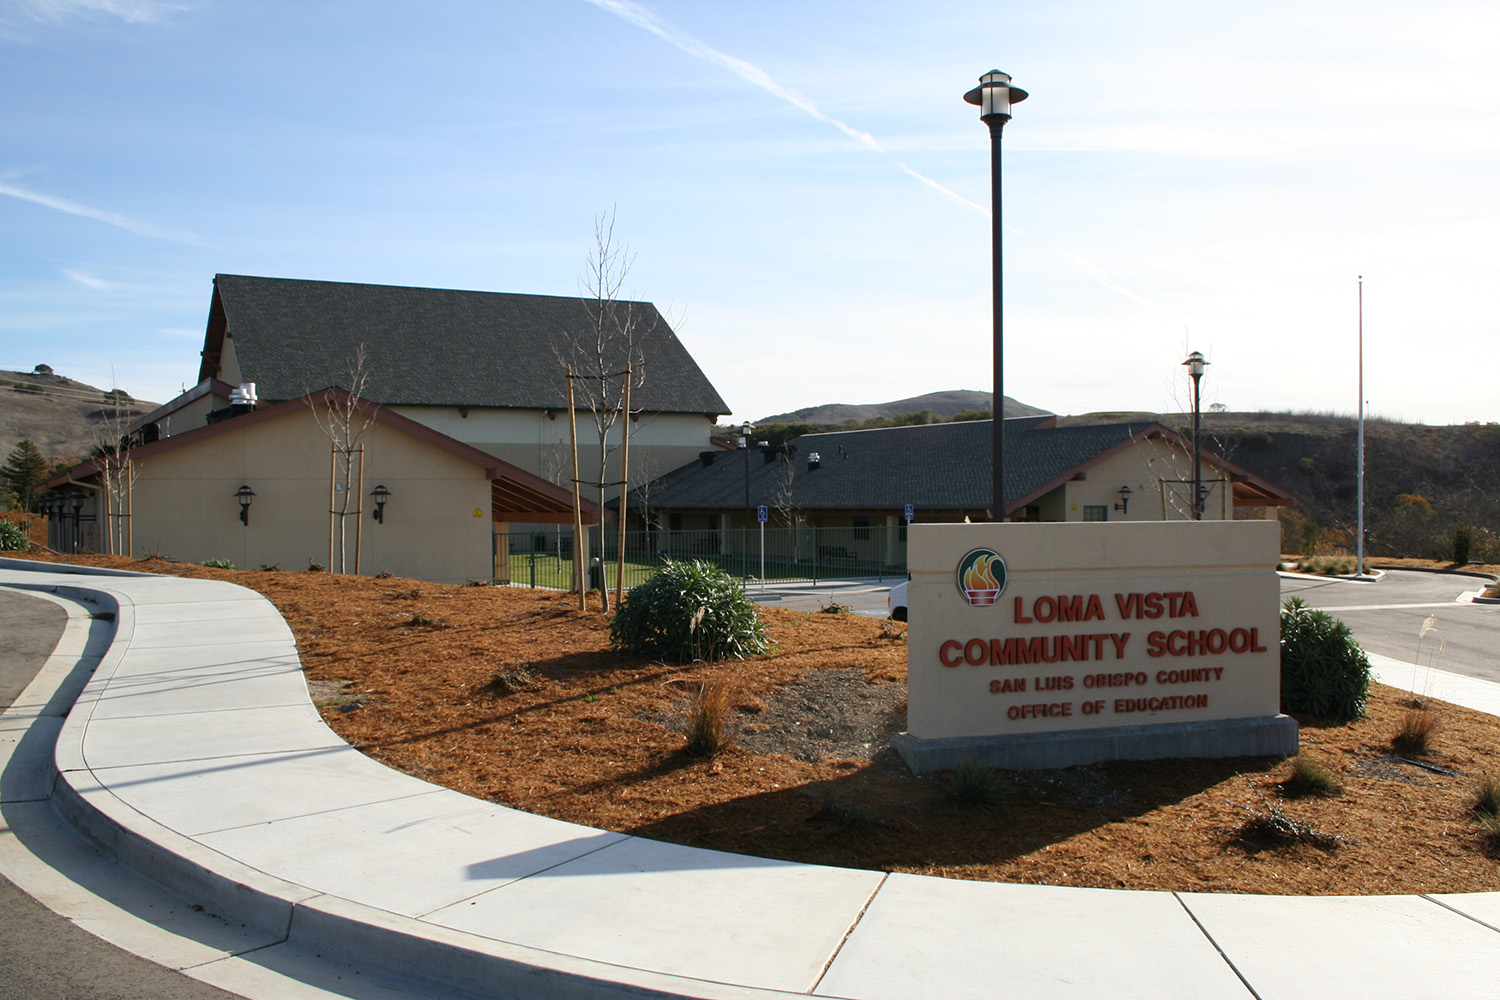 Loma Vista Community School.jpg